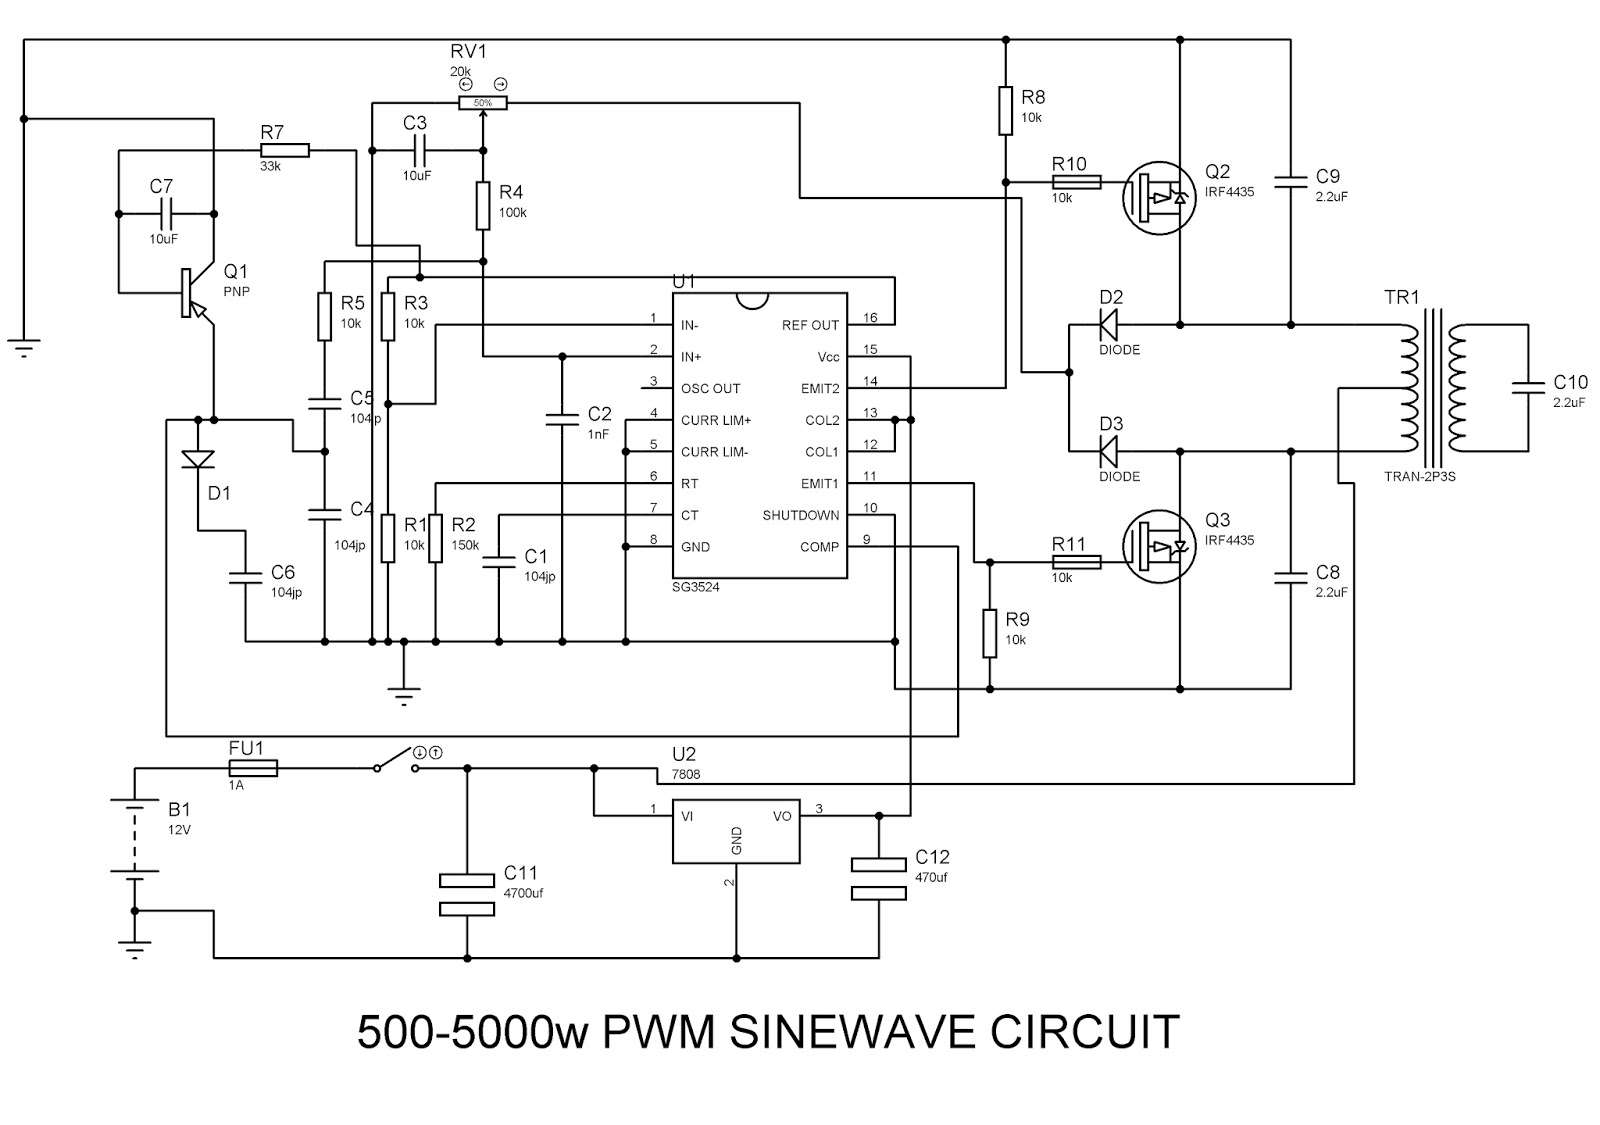 Sinewave Inverter Circuit Sg3524pwm Sl Technological Services Pulse Relay Dirver Diagram Using Transistors About The